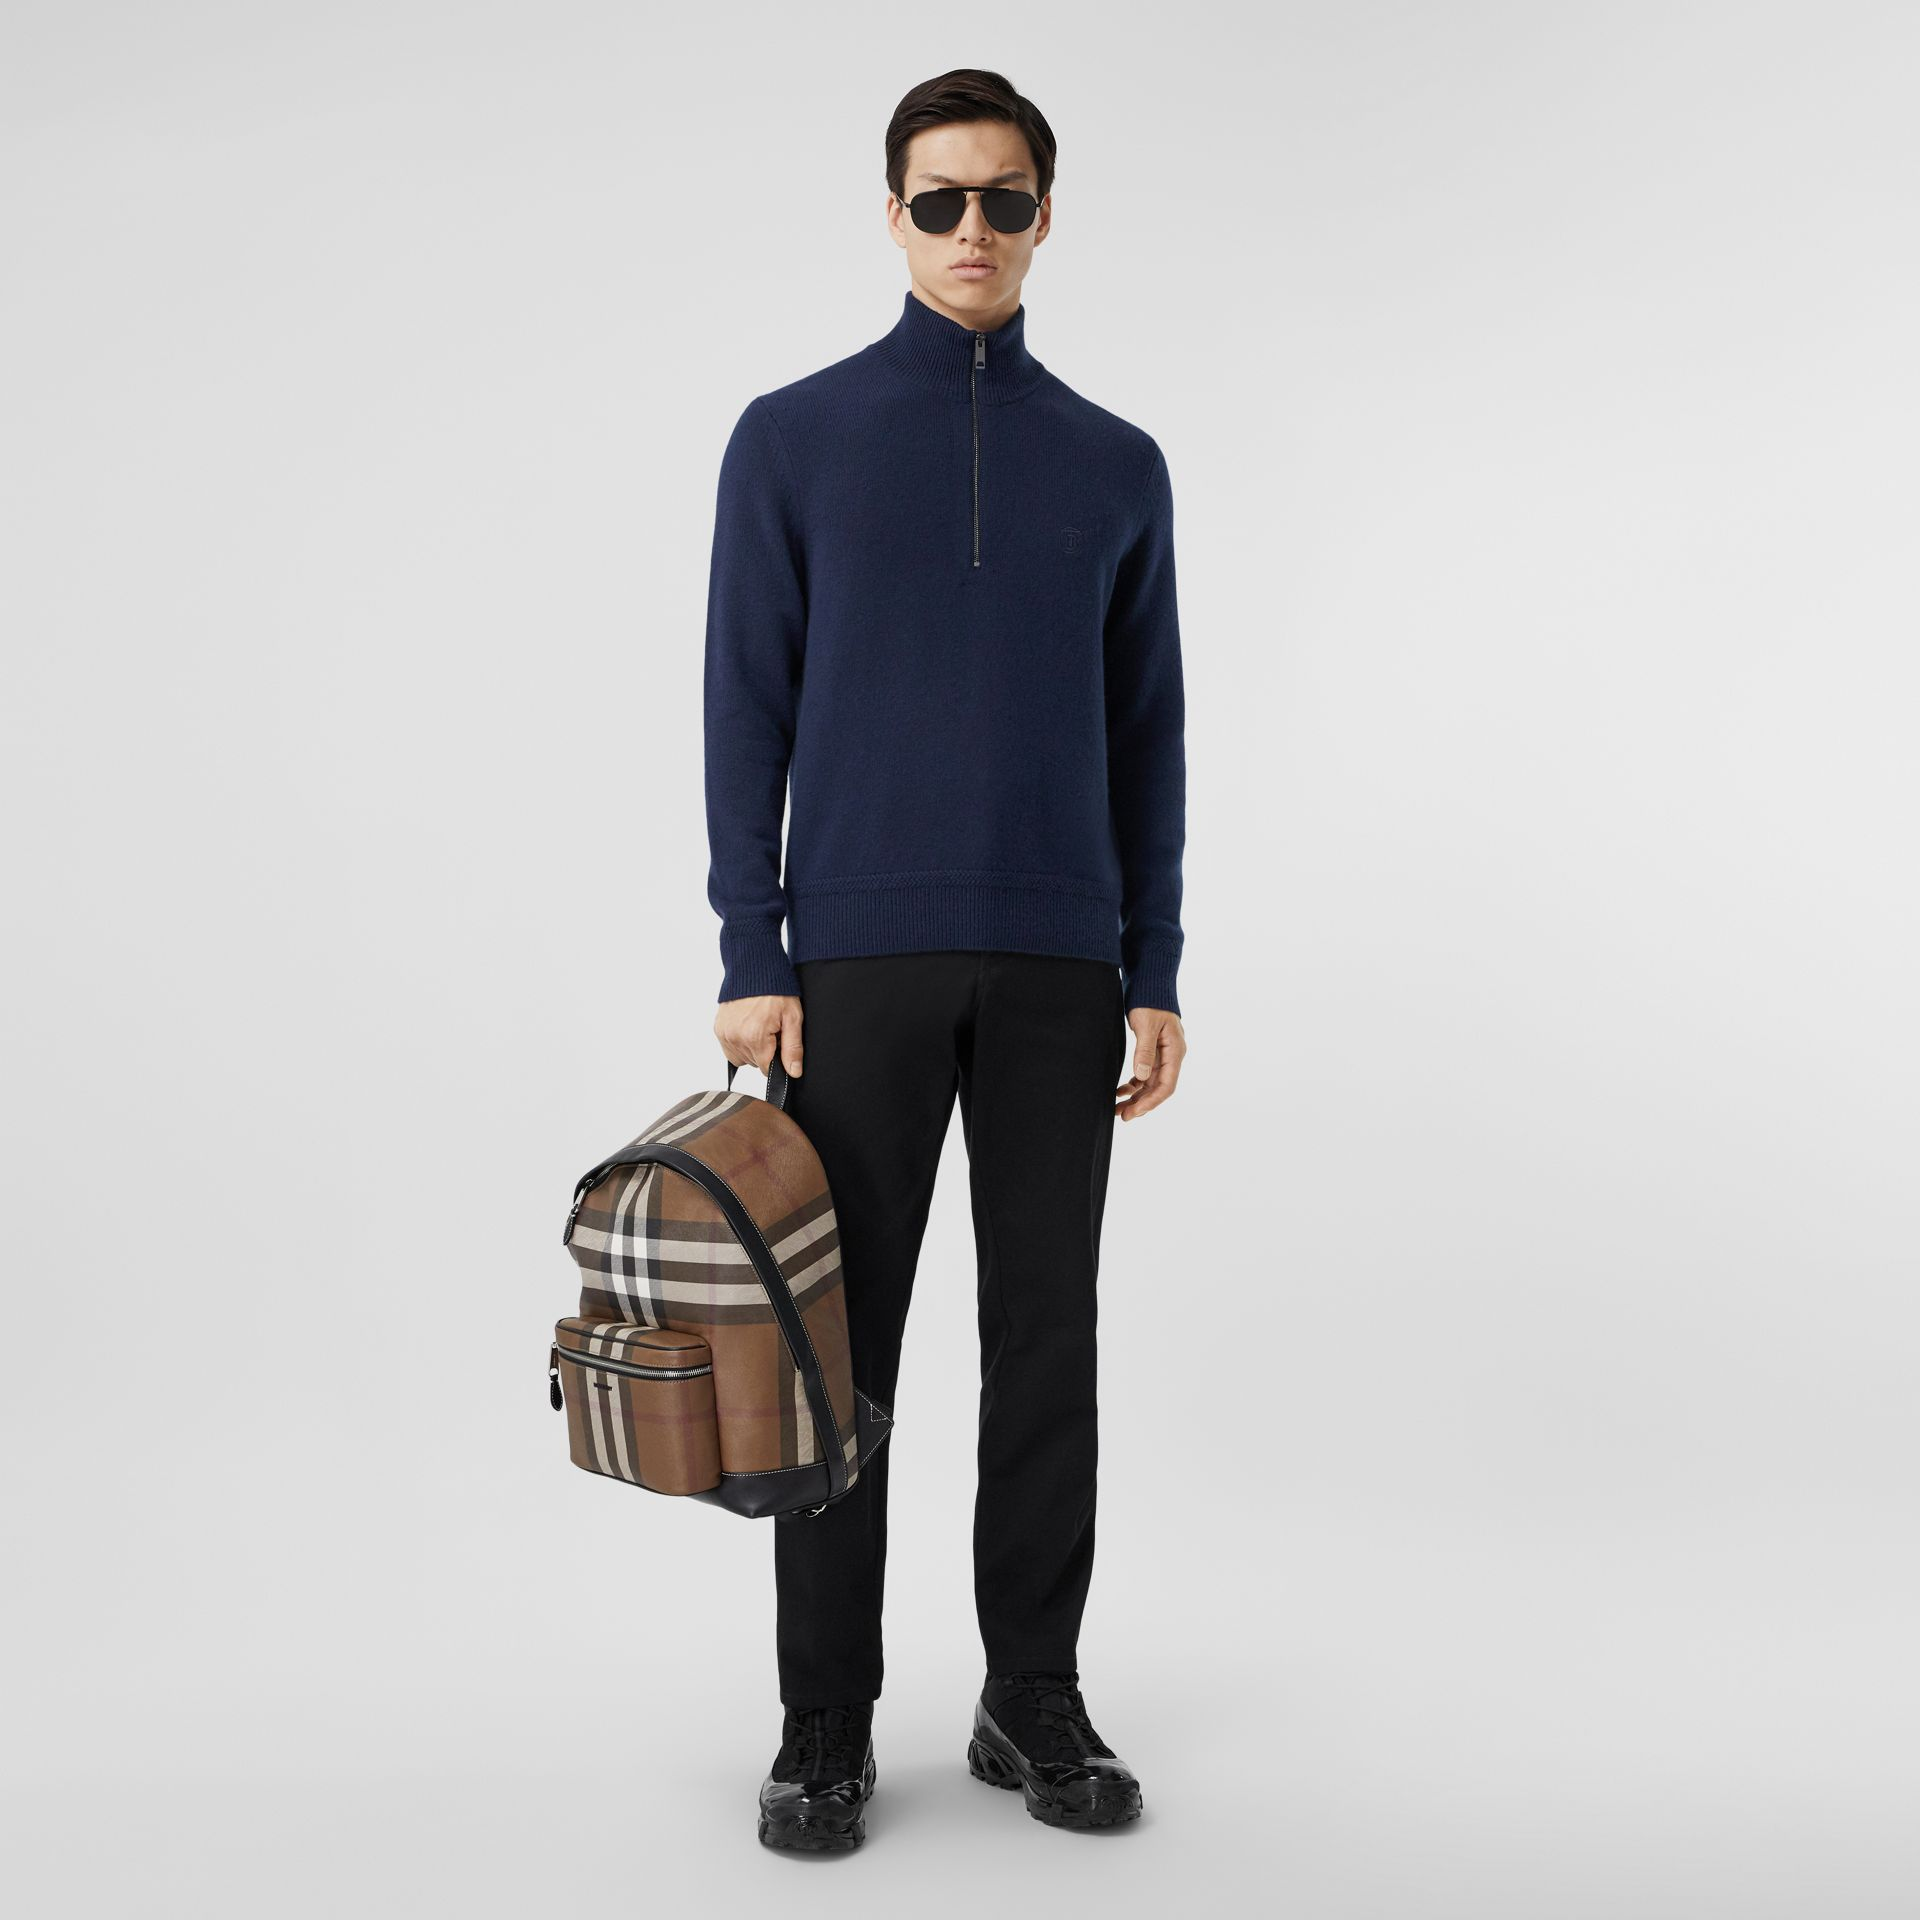 Monogram Motif Cashmere Funnel Neck Sweater in Navy - Men | Burberry - gallery image 4